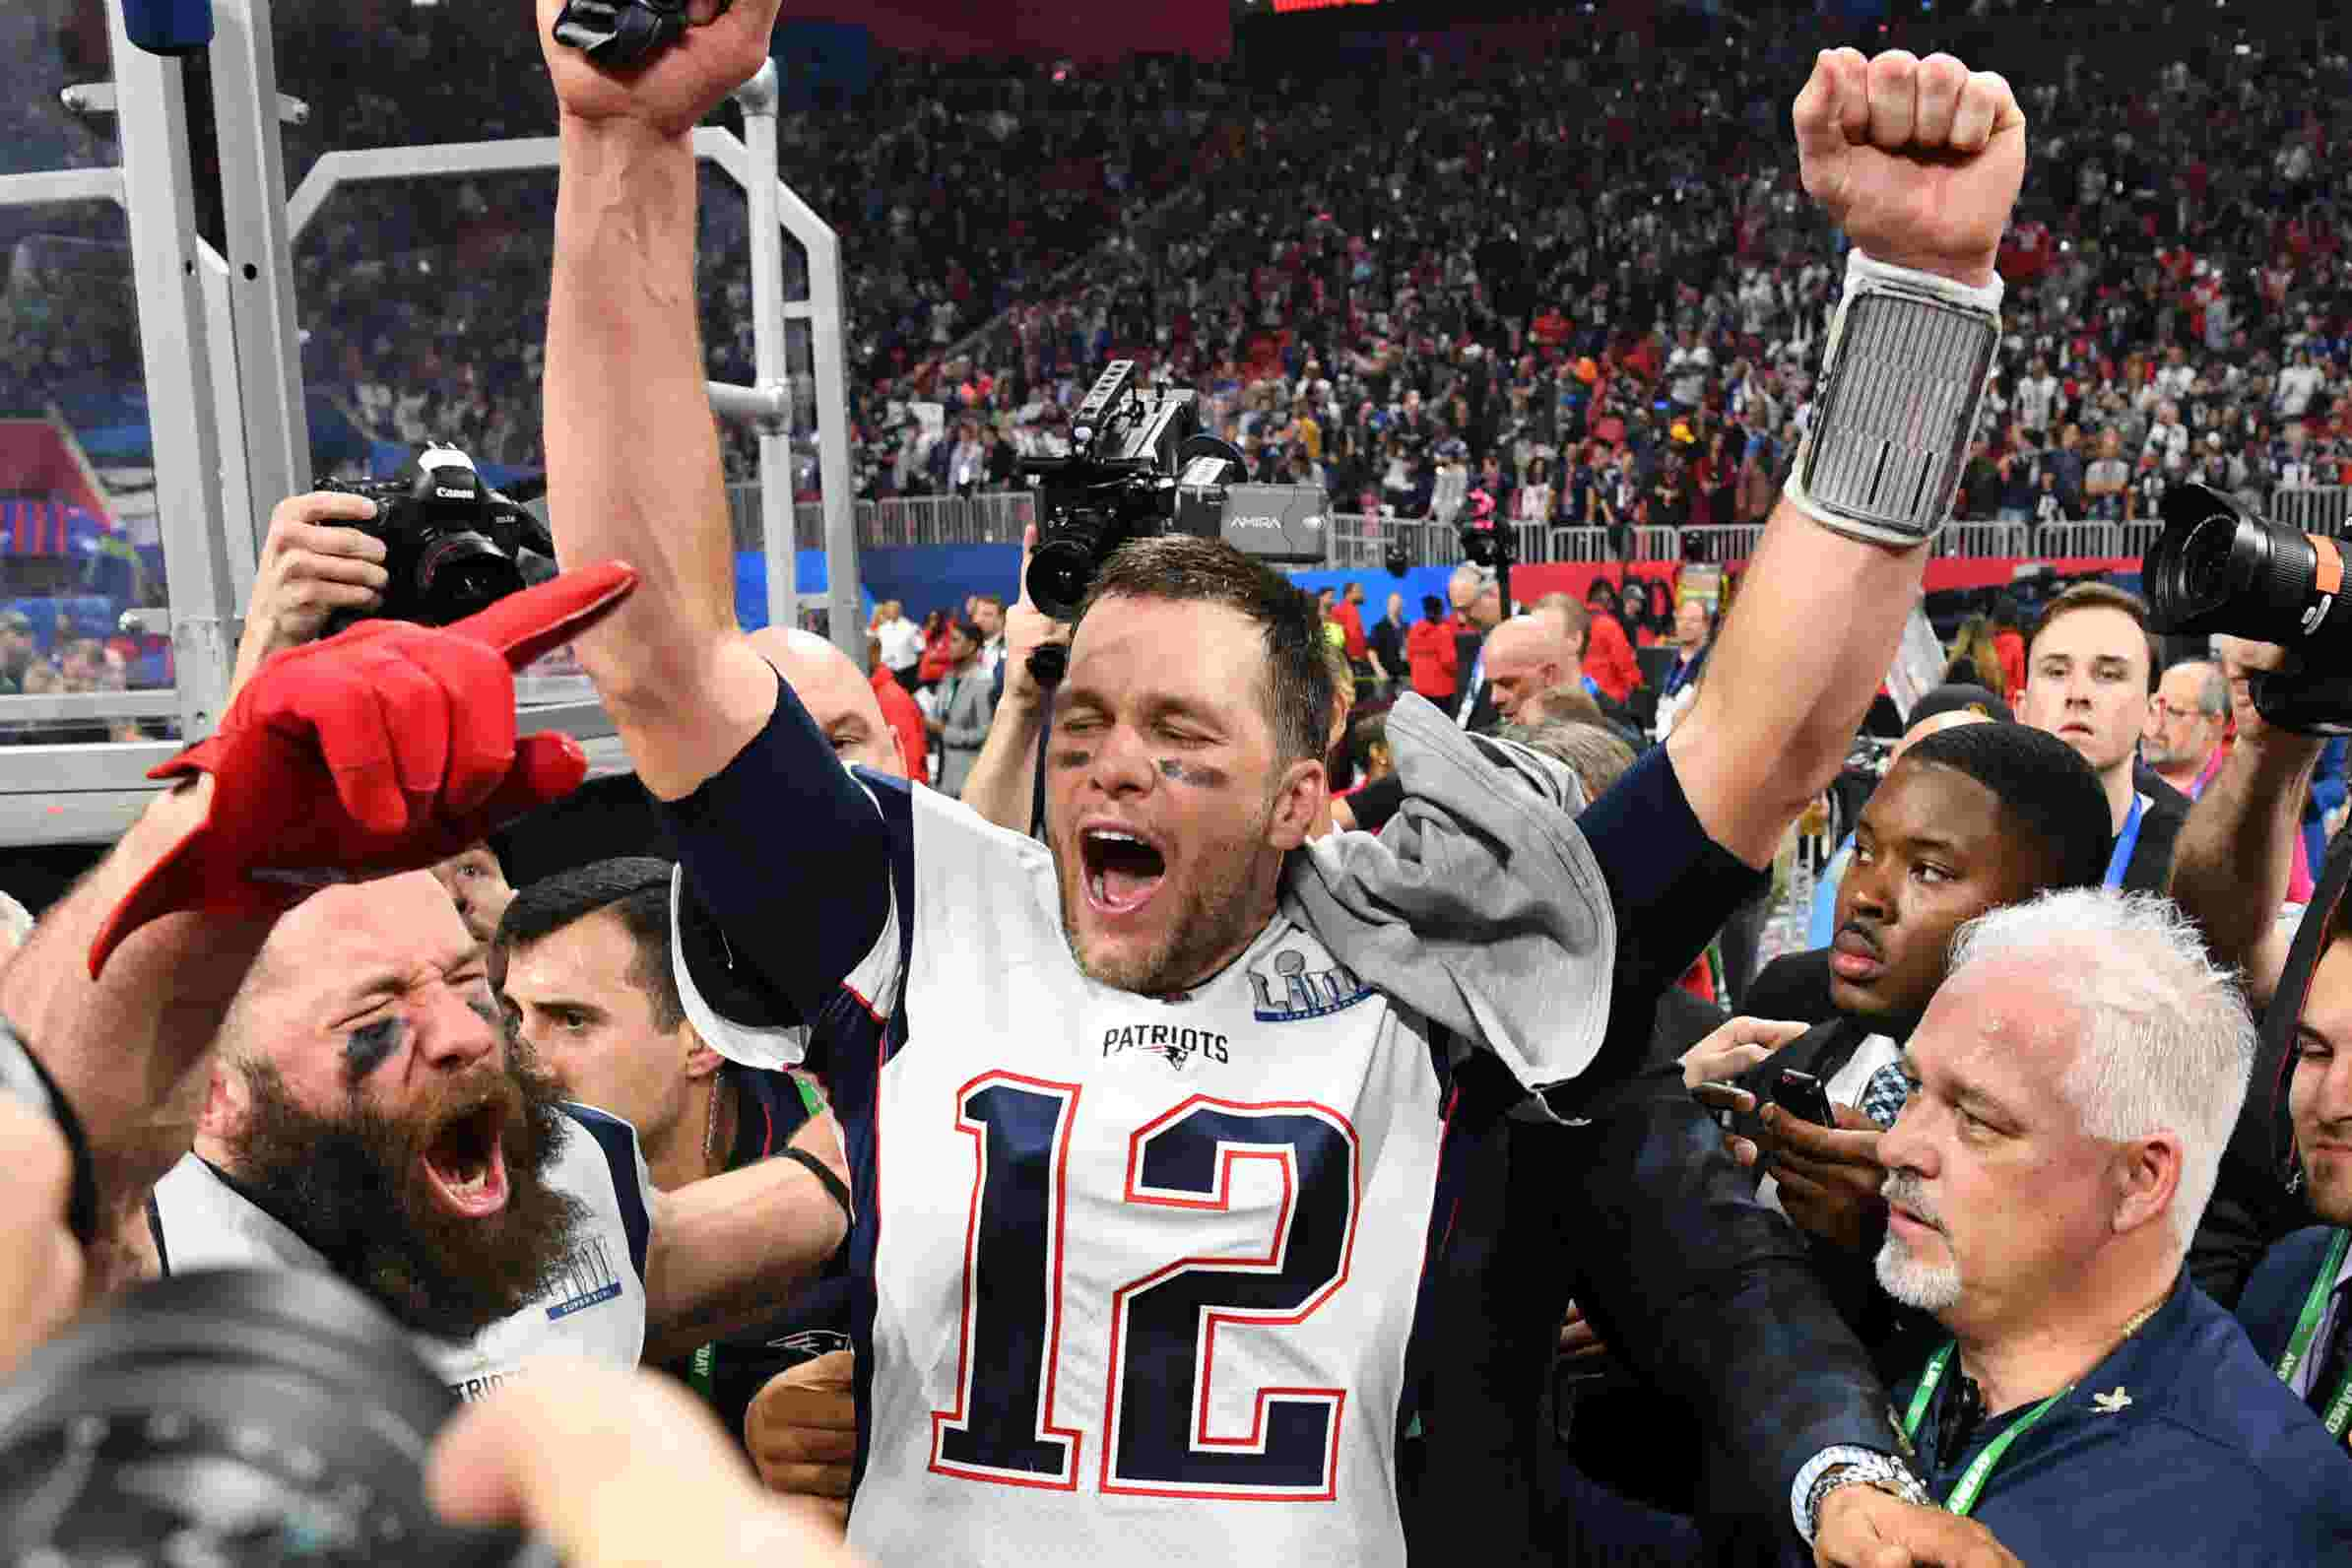 cf6686ad4 Tom Brady pulls off great escape following New England Patriots  Super Bowl  LIII win